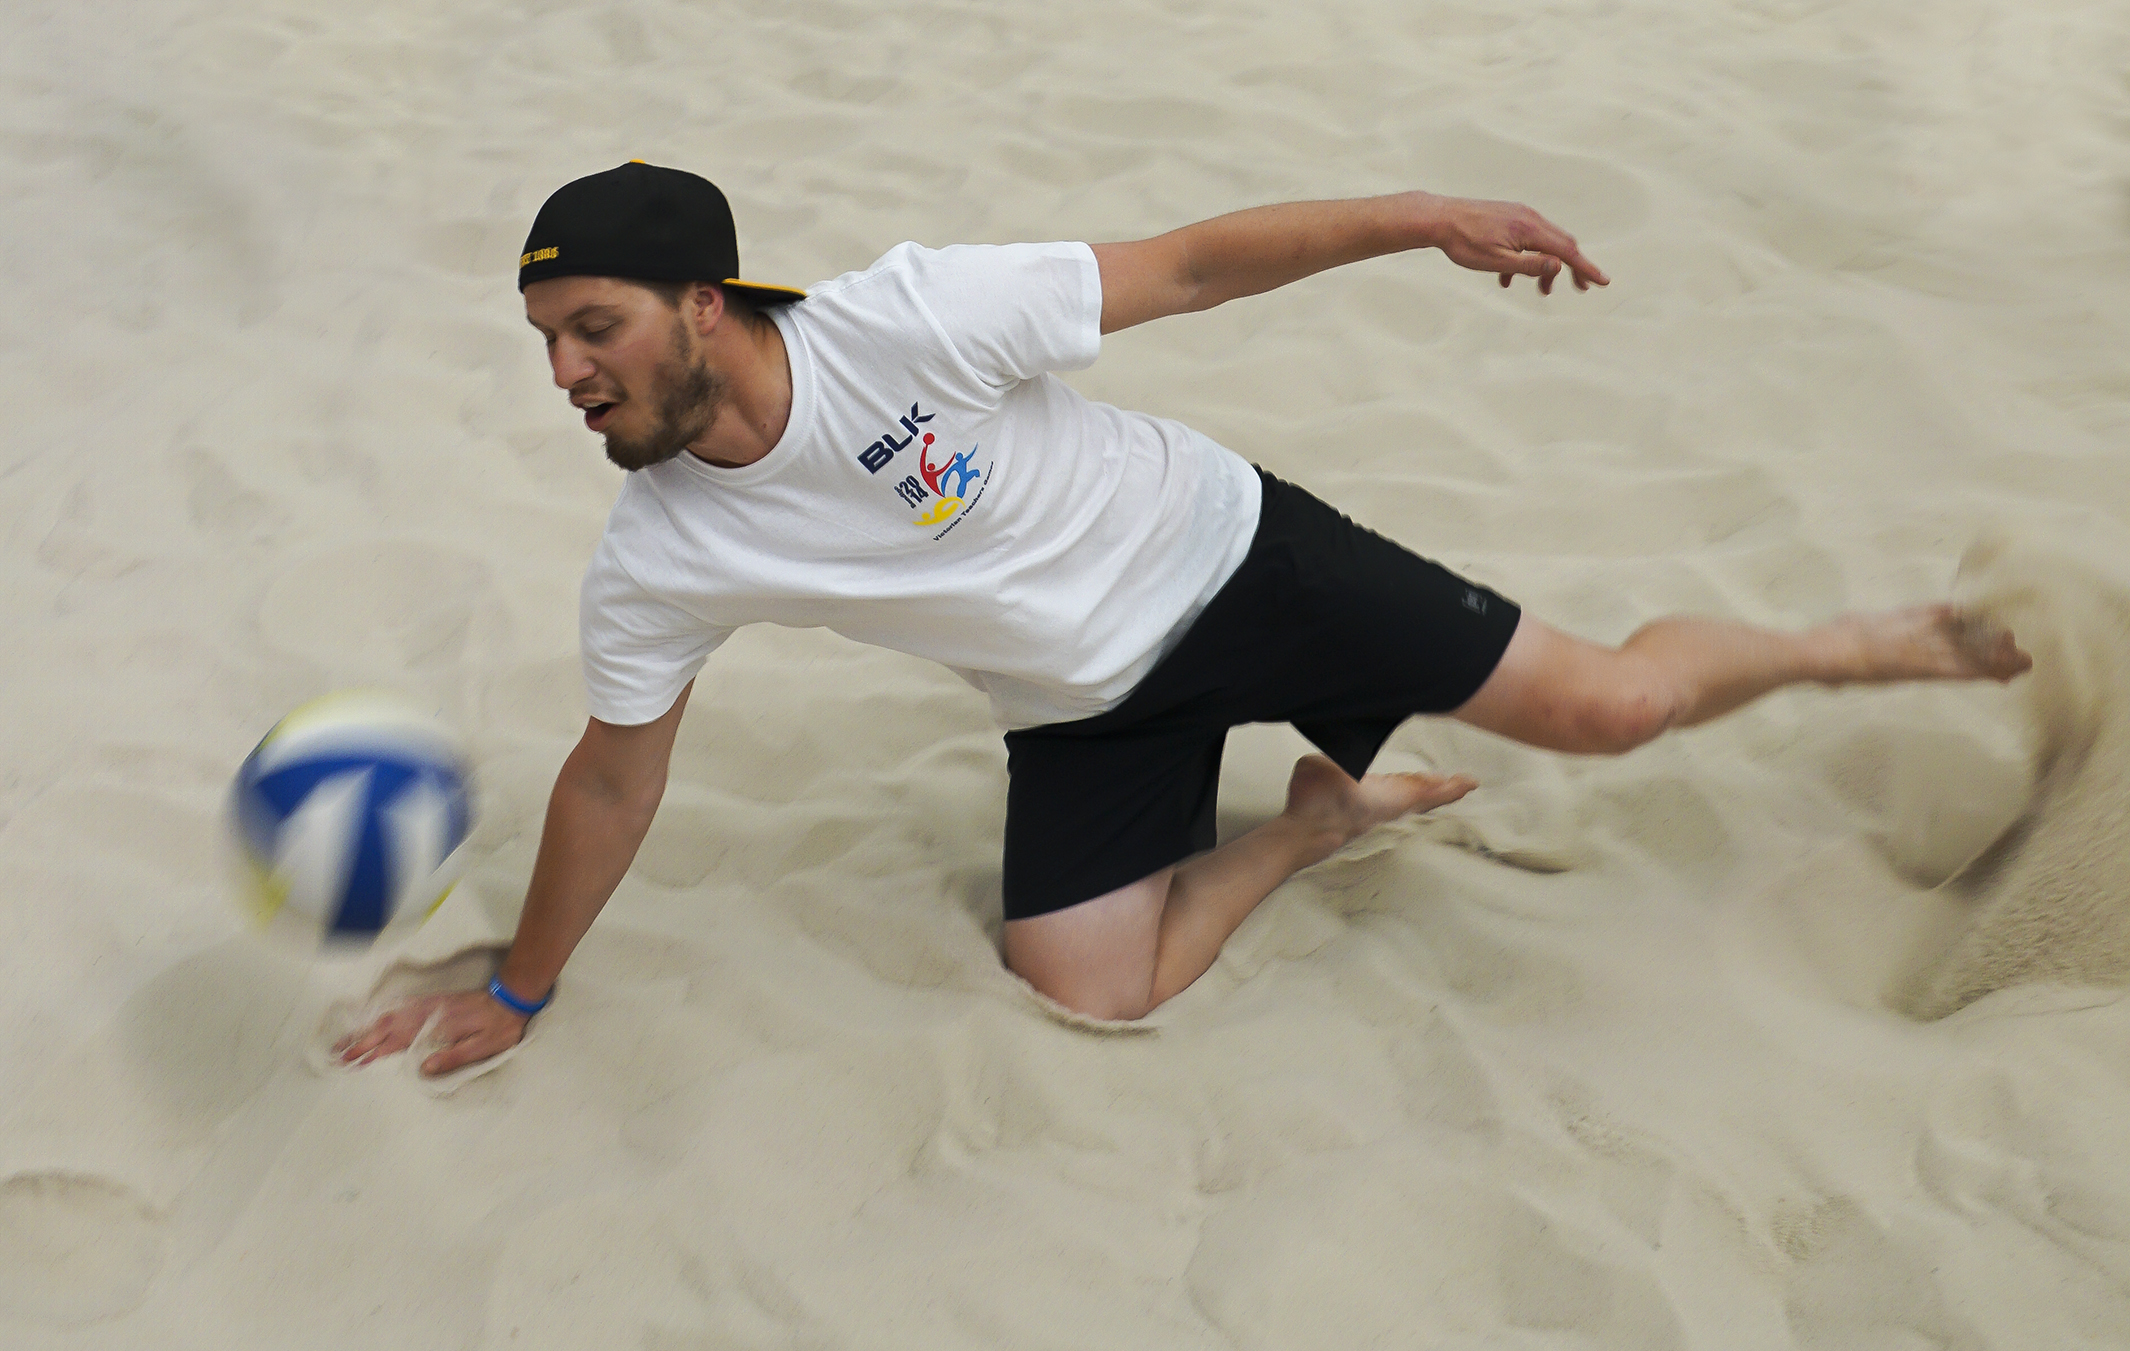 How to do Sports Photography Blurred Volleyball